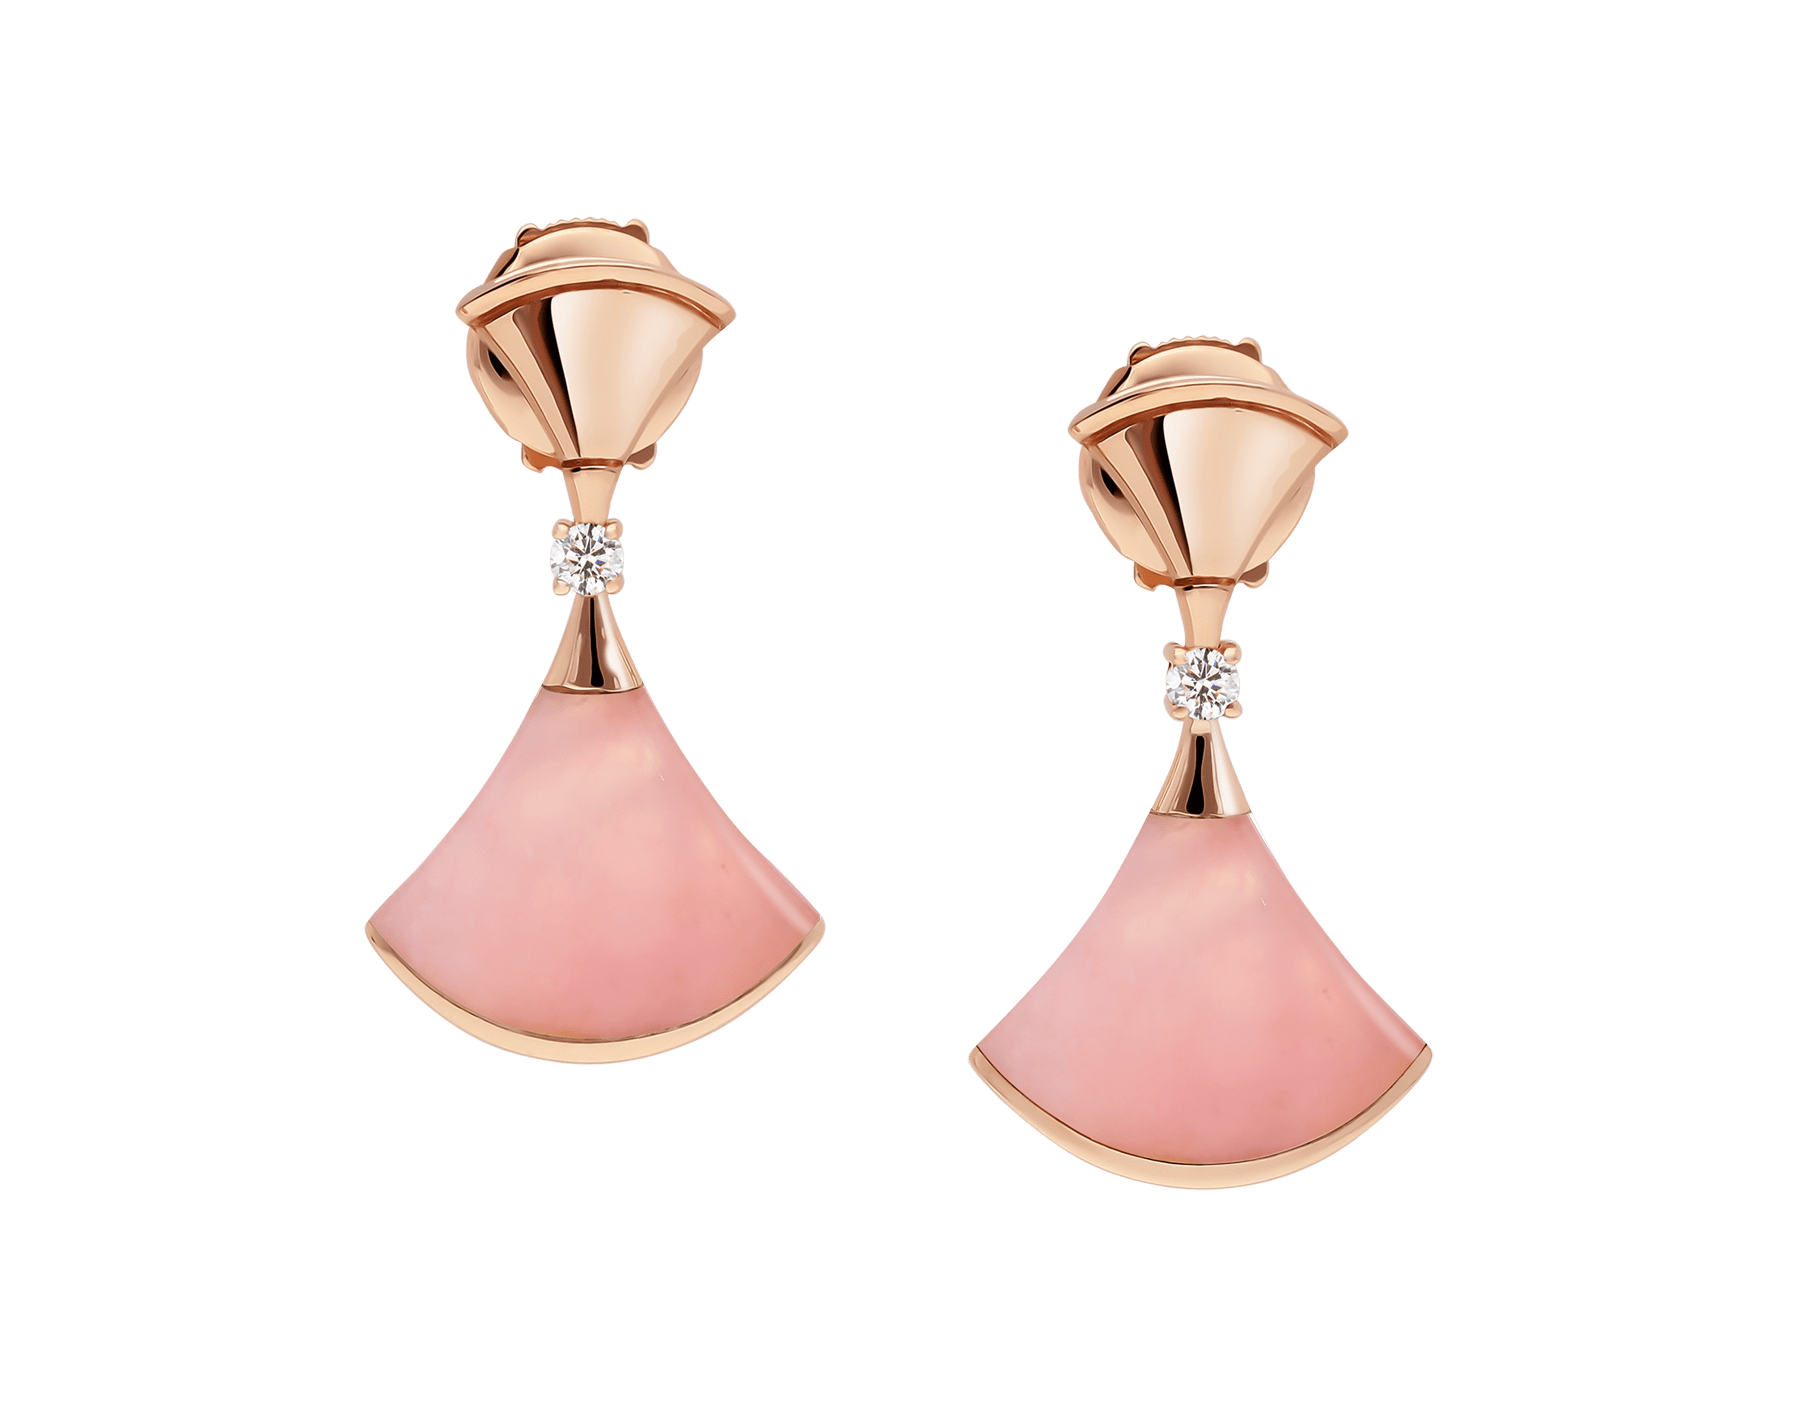 DIVAS' DREAM earrings in 18 kt rose gold set with pink opal inserts and pavé diamonds 357862 image 1